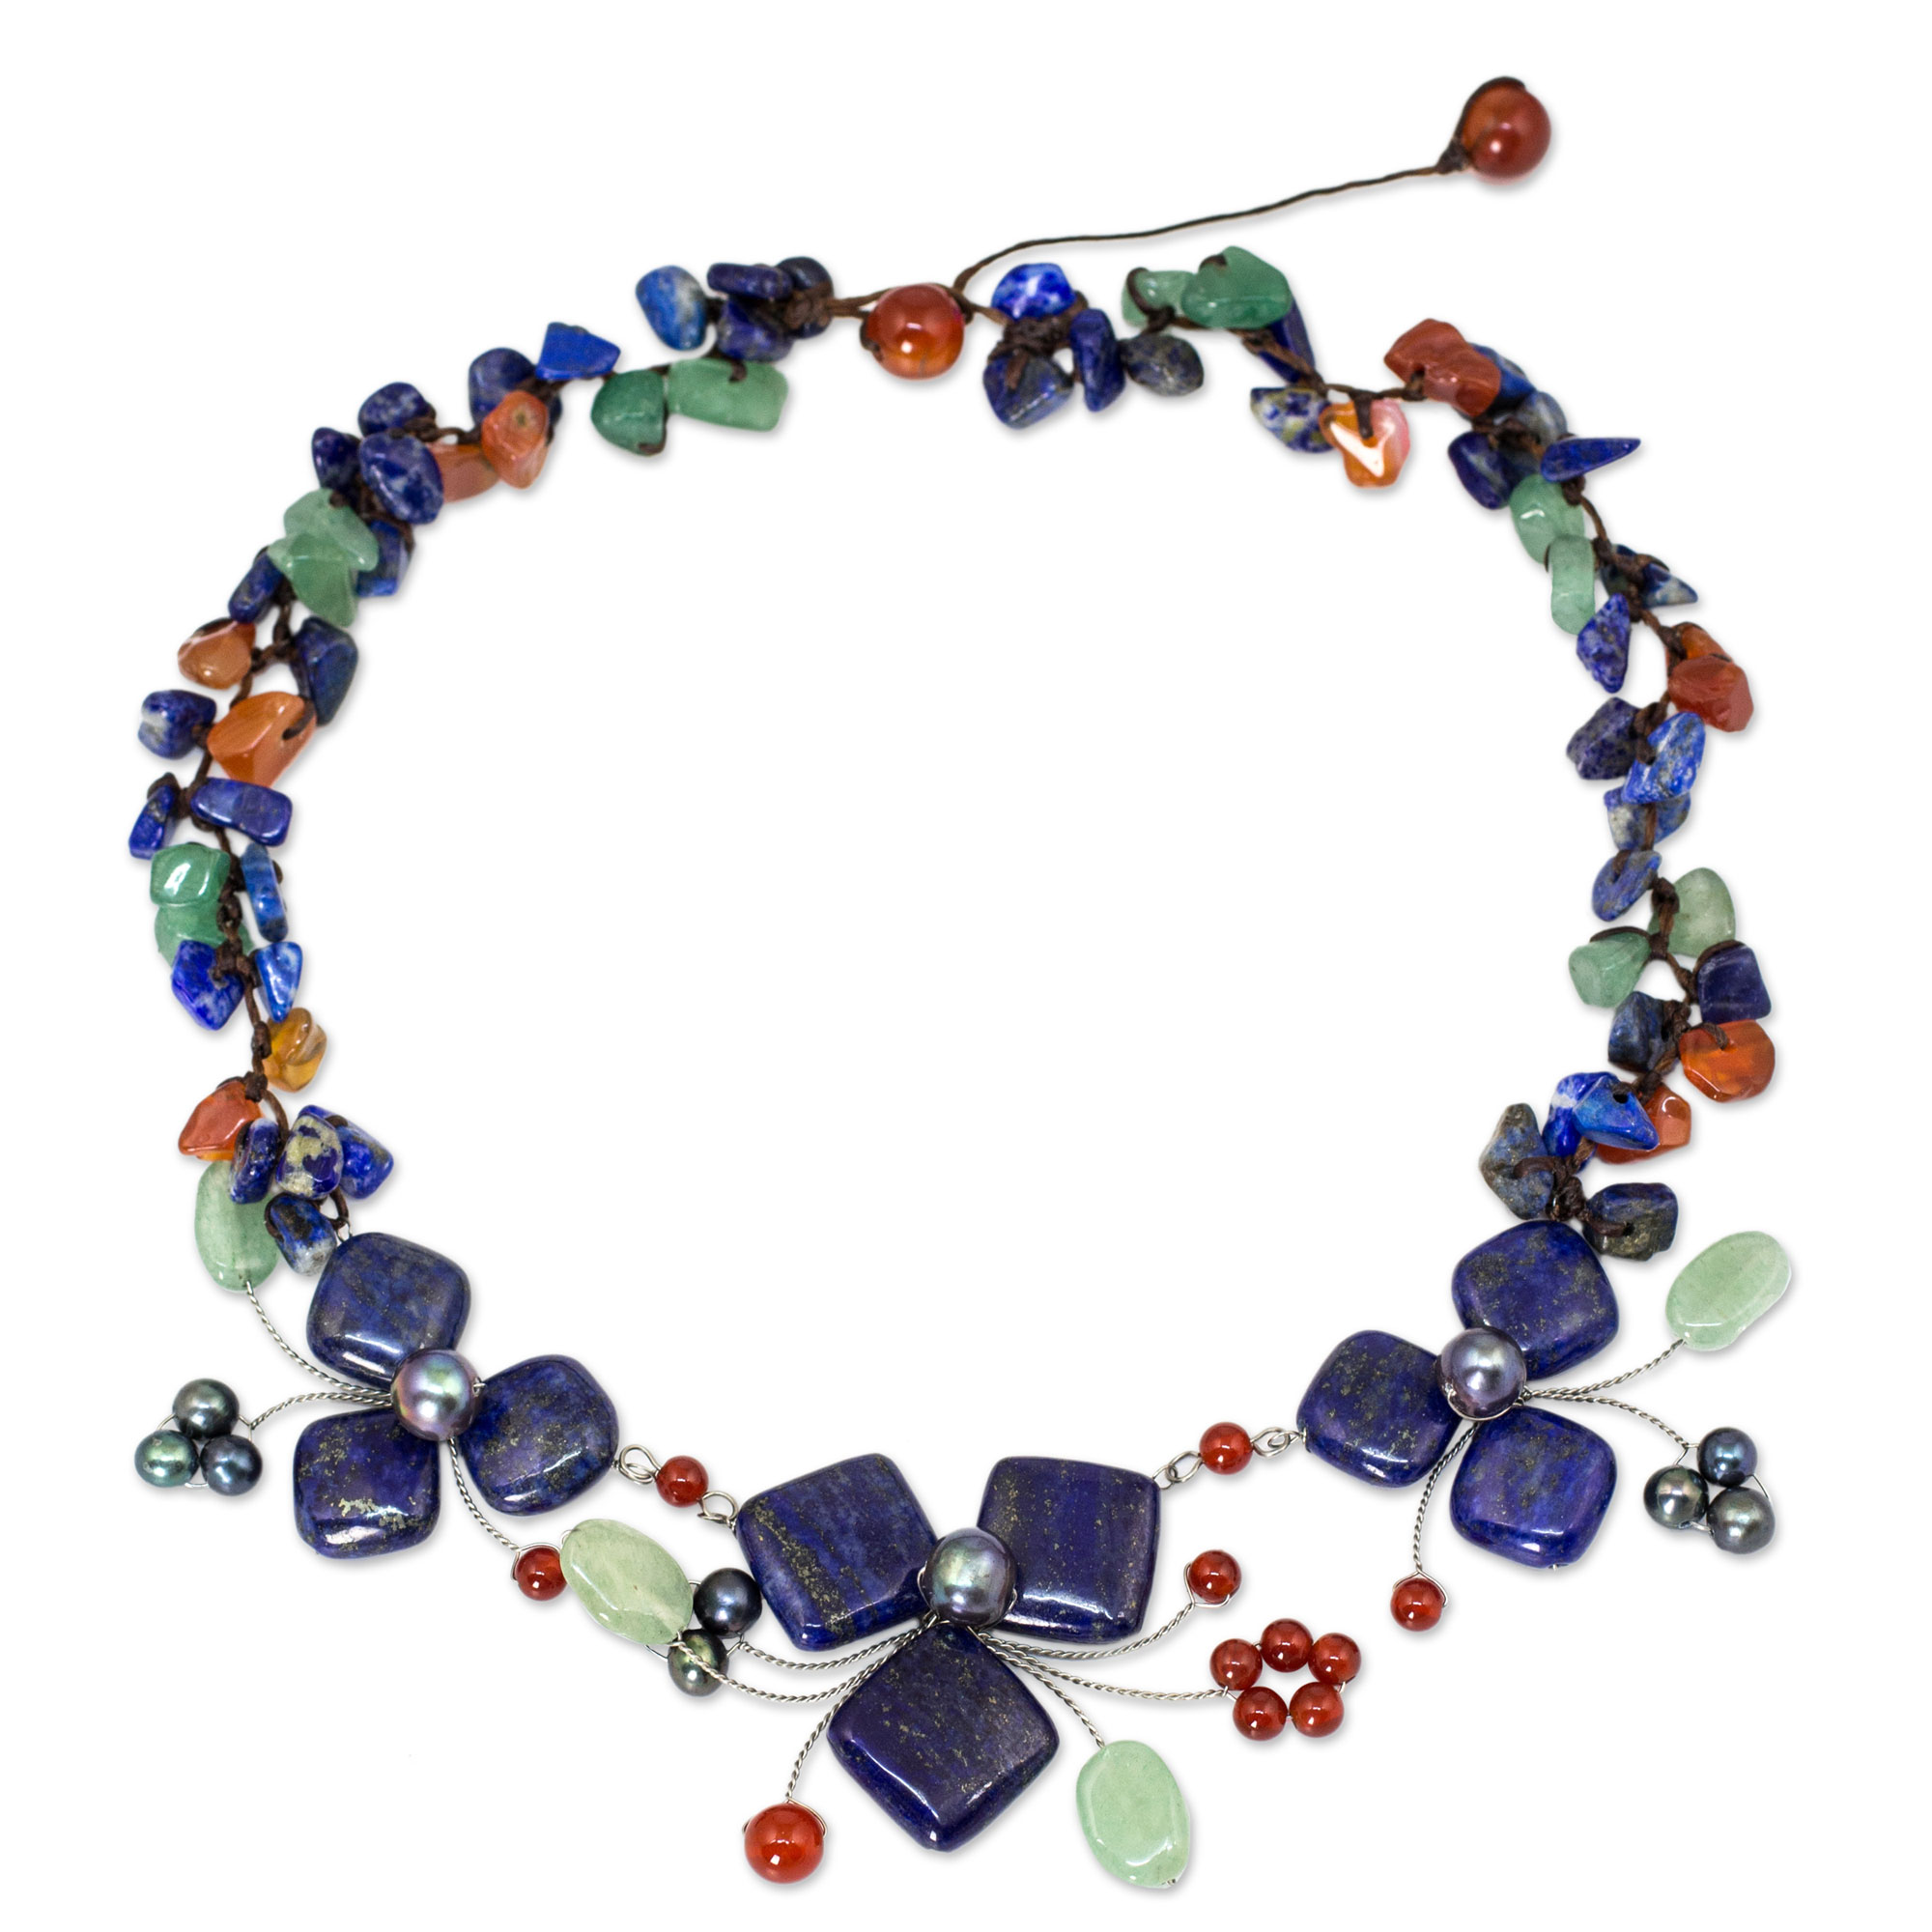 iridescence blog ritani rihanna trend gemstone edgy necklace jewels pearl jewelry